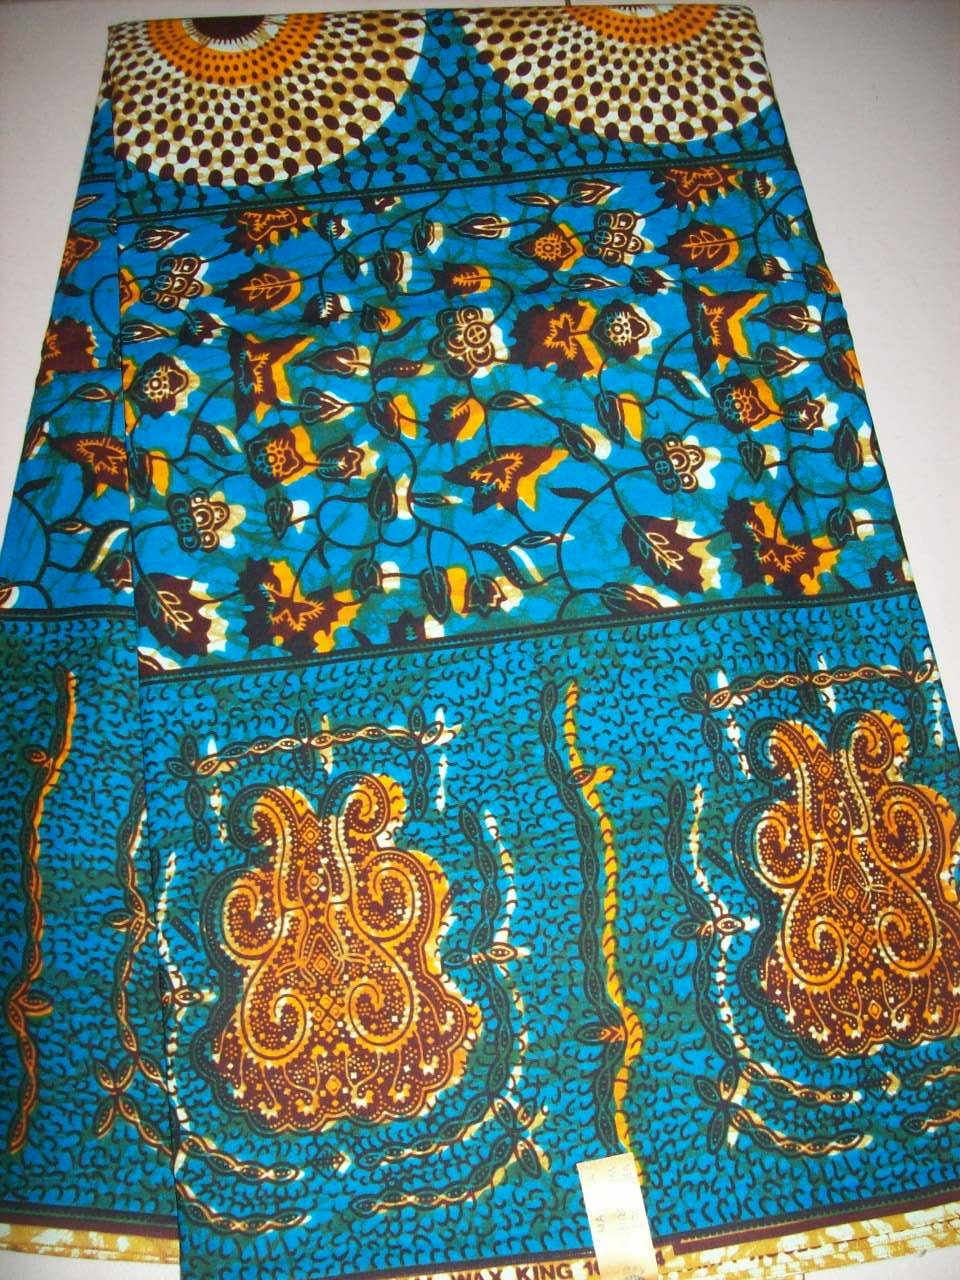 6 yards turquoise blue and orange african print fabric. Black Bedroom Furniture Sets. Home Design Ideas